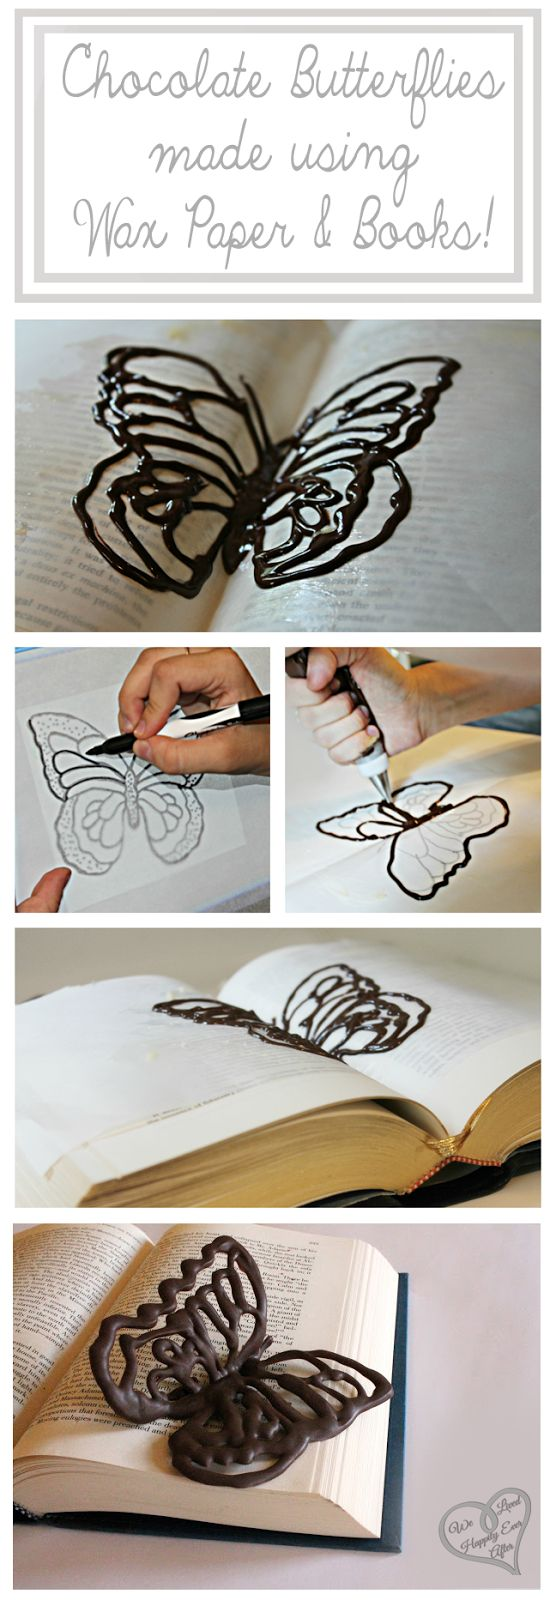 Make Chocolate Butterflies Using Wax Paper and Books! The Books give it a realistic pose. Perfect for Valentine's Day! The Template/Pattern is included in the Tutorial!